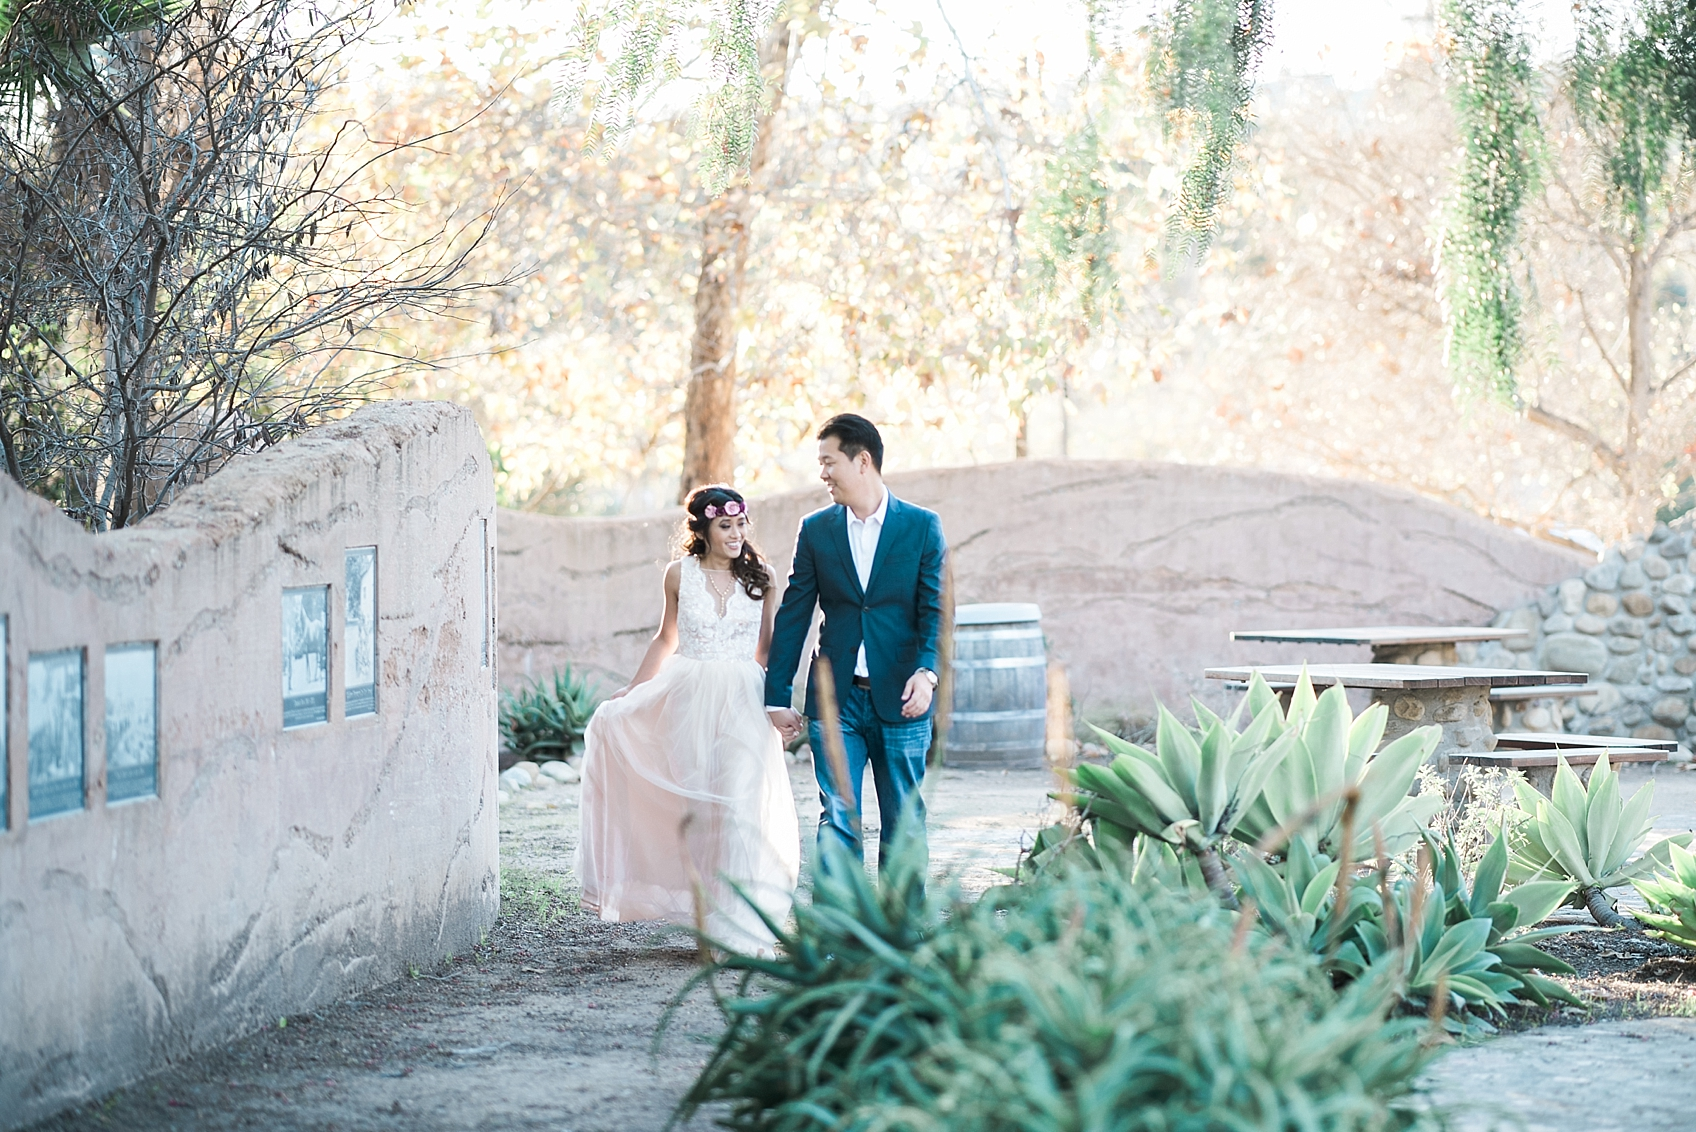 San-Juan-Capistrano-Mission-Engagement-Photographer-Carissa-Woo-Photography_0043.jpg